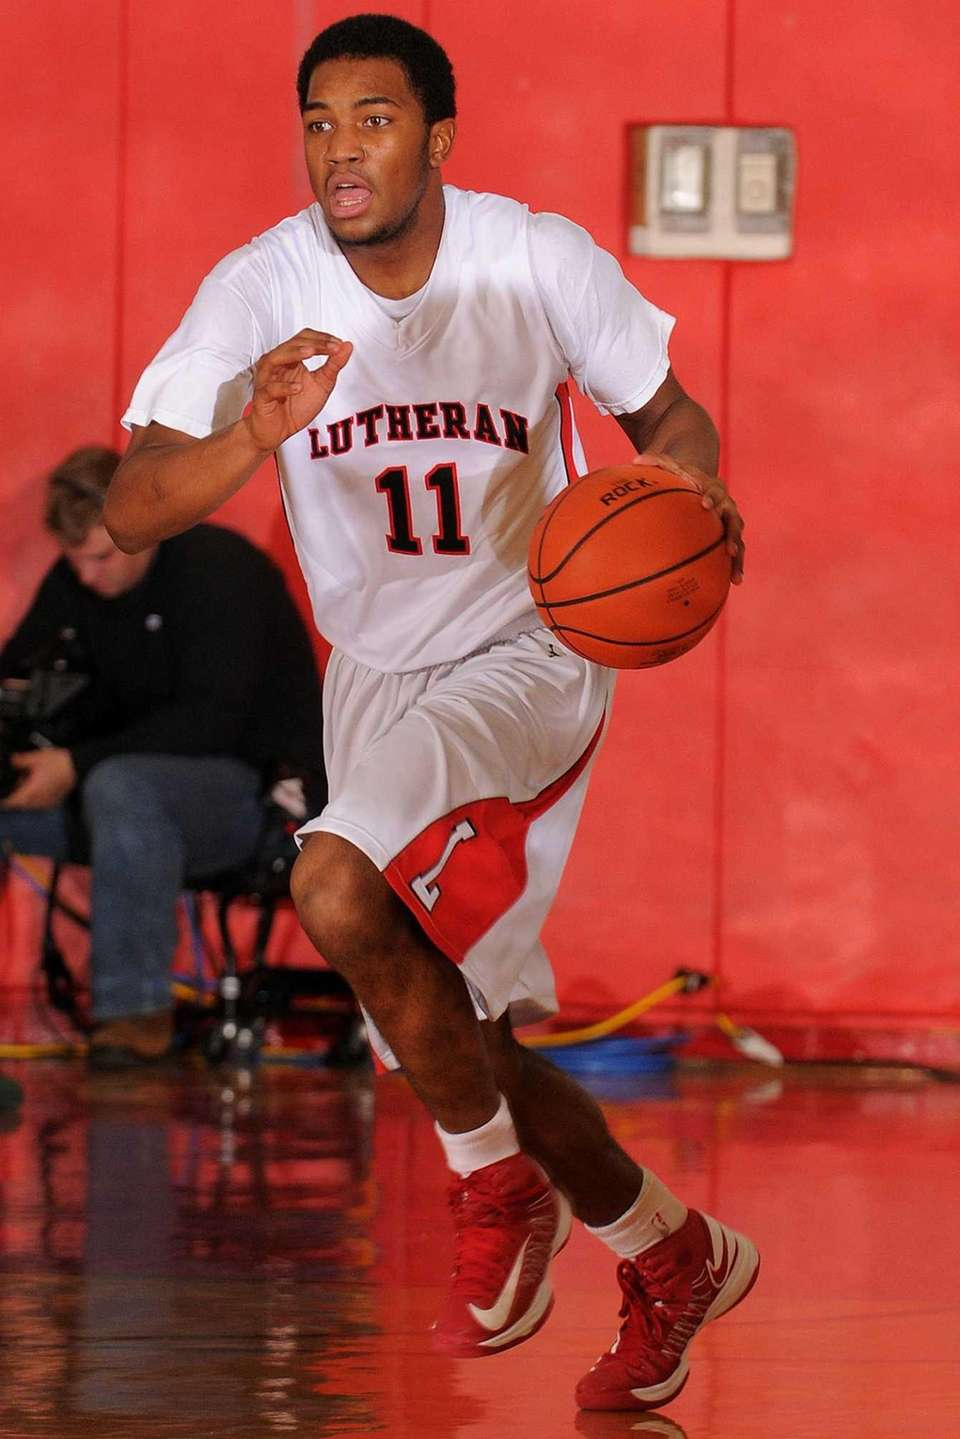 Lutheran's Tawayne Anderson dribbles upcourt in the third